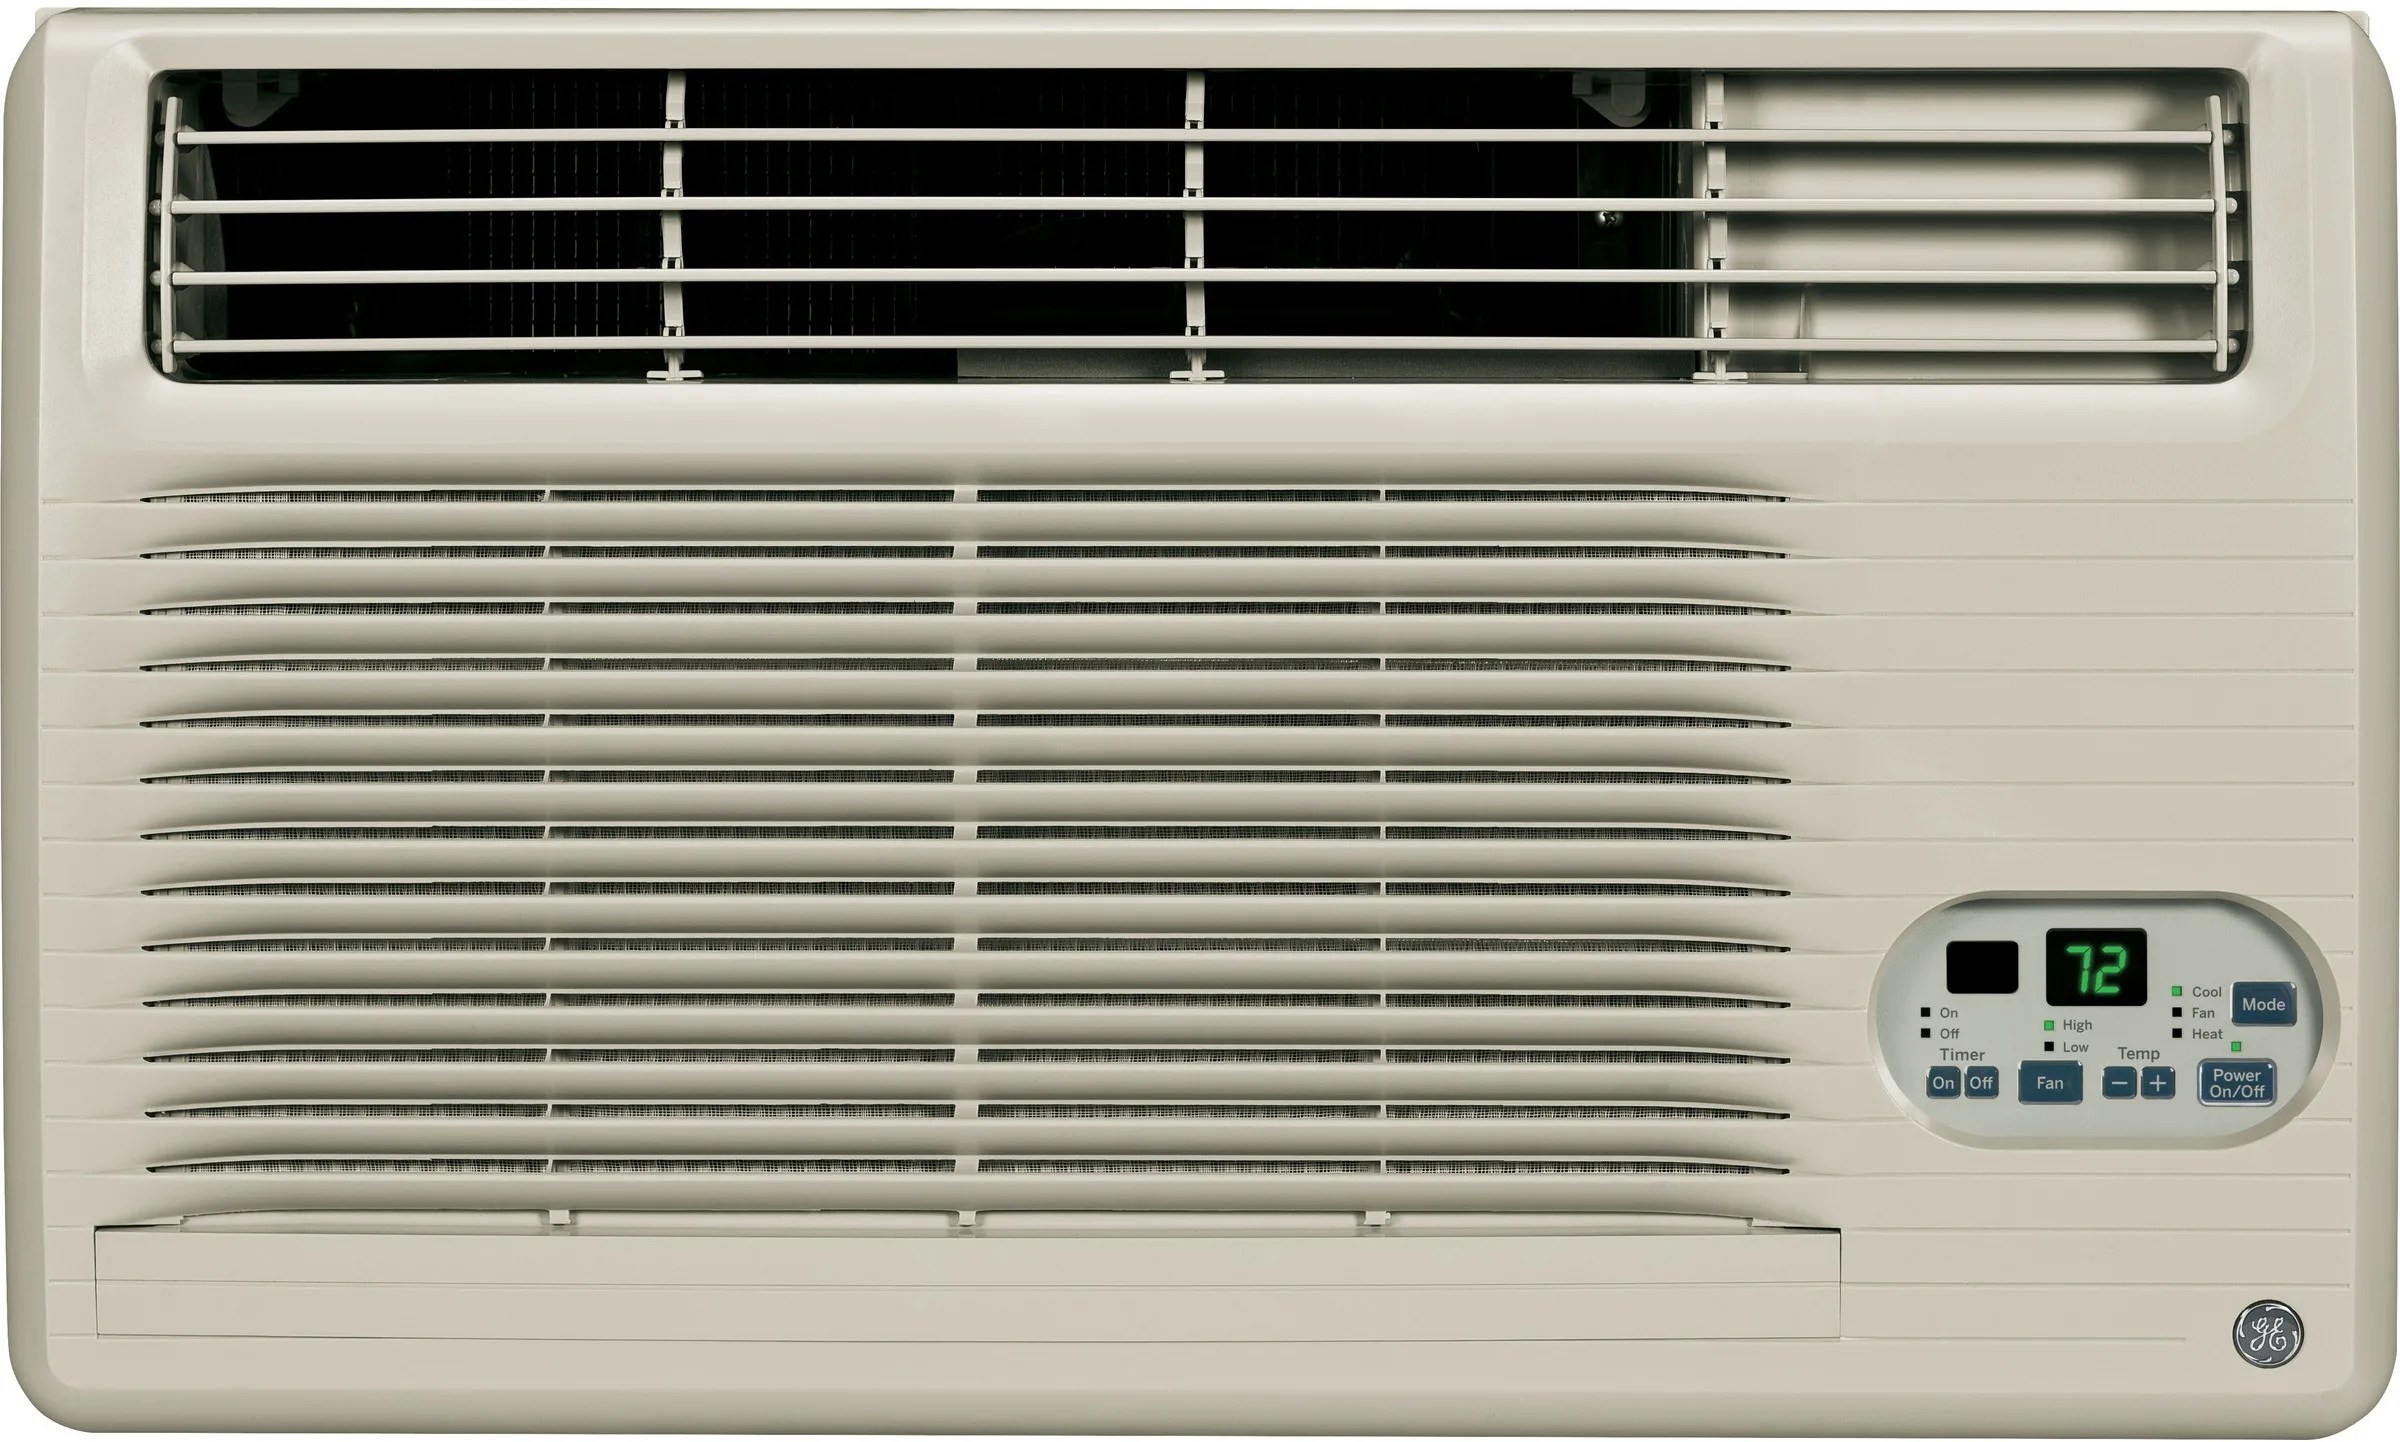 Diy Air Conditioner No Electricity Ge Ajem12dcf 12 000 Btu Thru The Wall Air Conditioner With